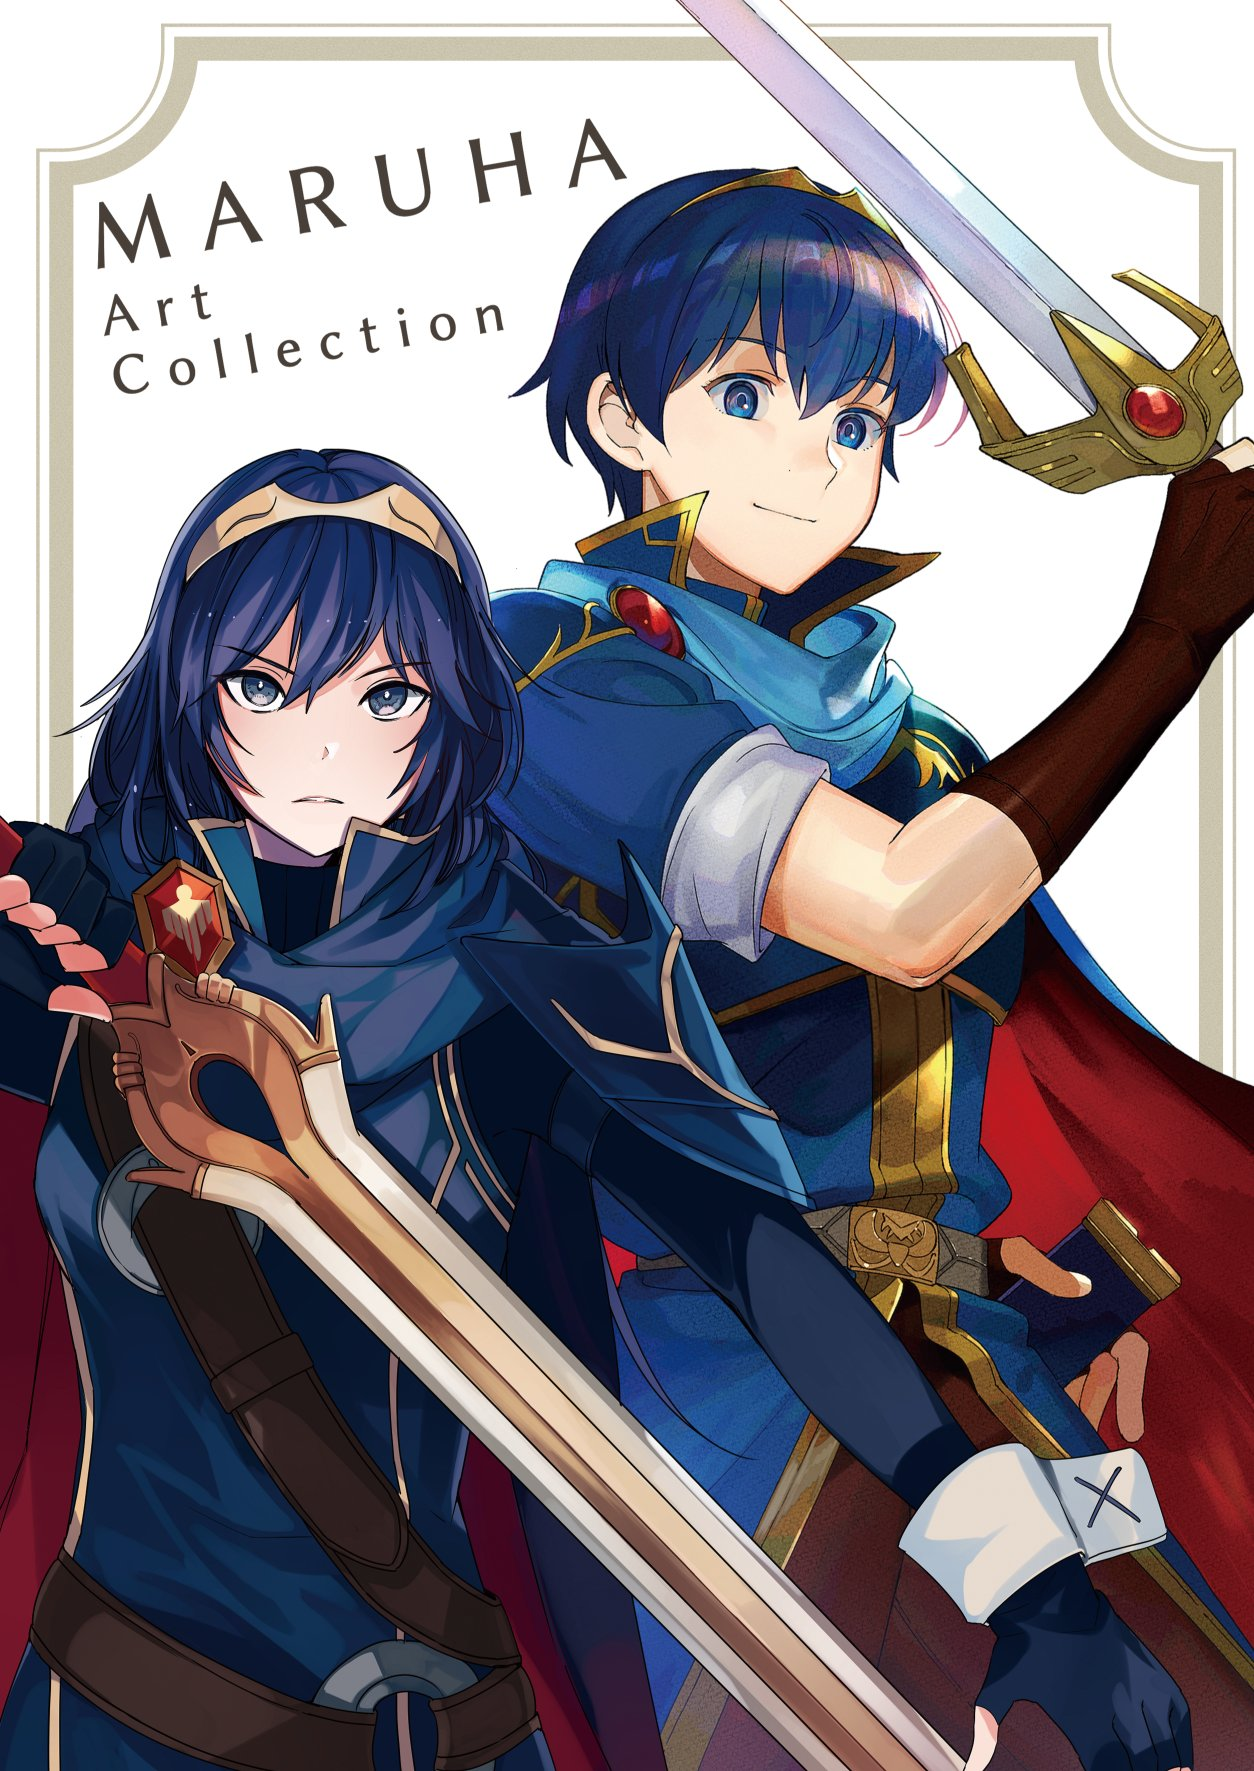 1boy 1girl blue_eyes blue_hair brown_gloves cape closed_mouth falchion_(fire_emblem) fingerless_gloves fire_emblem fire_emblem:_kakusei fire_emblem:_monshou_no_nazo fire_emblem:_mystery_of_the_emblem fire_emblem:_shin_ankoku_ryuu_to_hikari_no_tsurugi fire_emblem_11 fire_emblem_13 fire_emblem_3 fire_emblem_awakening fire_emblem_heroes fire_emblem_shadow_dragon gloves great_grandfather_and_great_granddaughter highres holding holding_sword holding_weapon intelligent_systems kazuha_(kazuha1003) kyufe long_hair lucina lucina_(fire_emblem) marth marth_(fire_emblem) nintendo short_hair short_sleeves super_smash_bros. sword tiara upper_body weapon